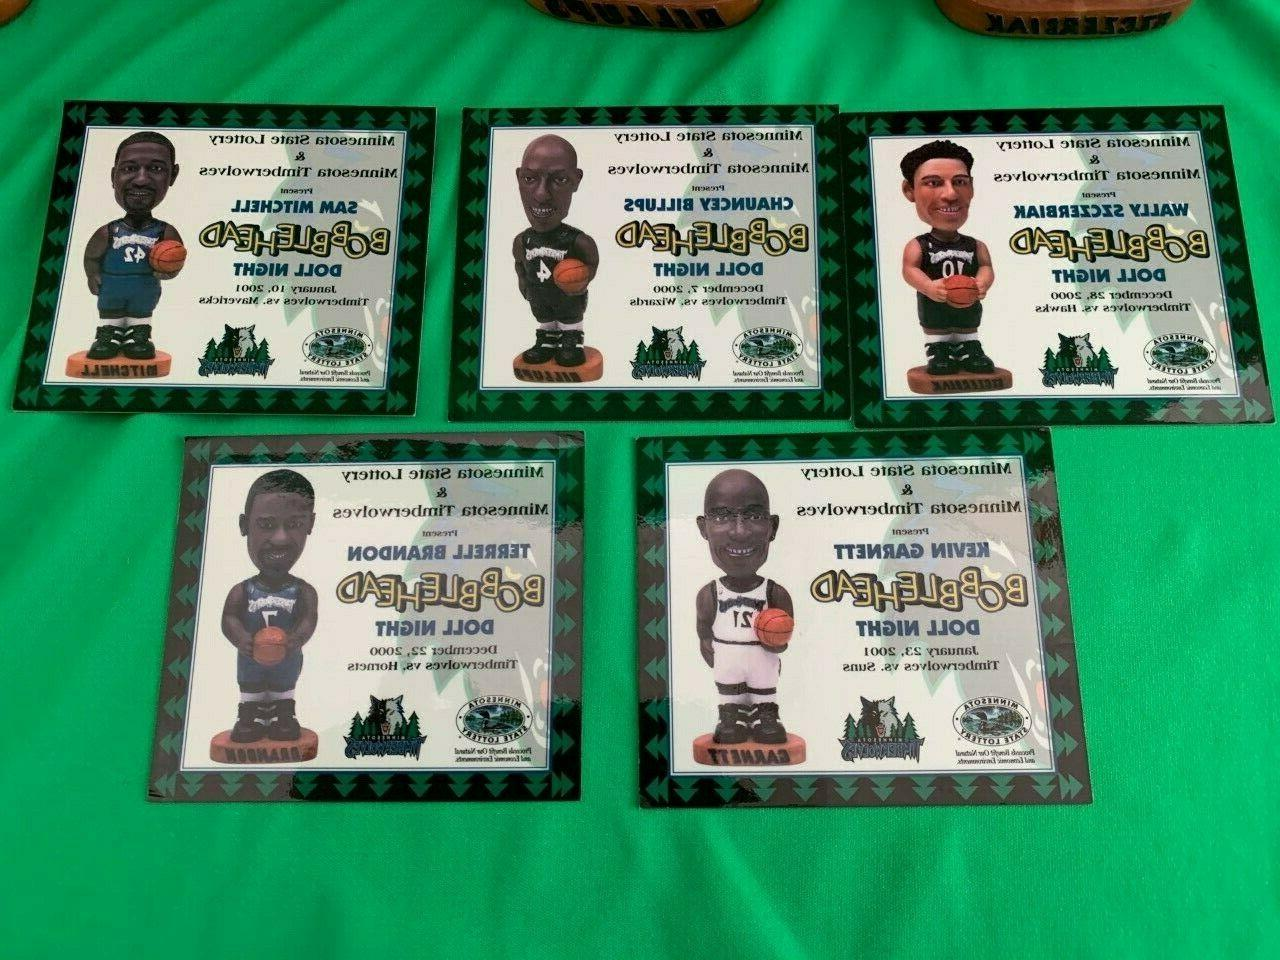 2000 Minnesota Timberwolves Complete Of & Authenticity